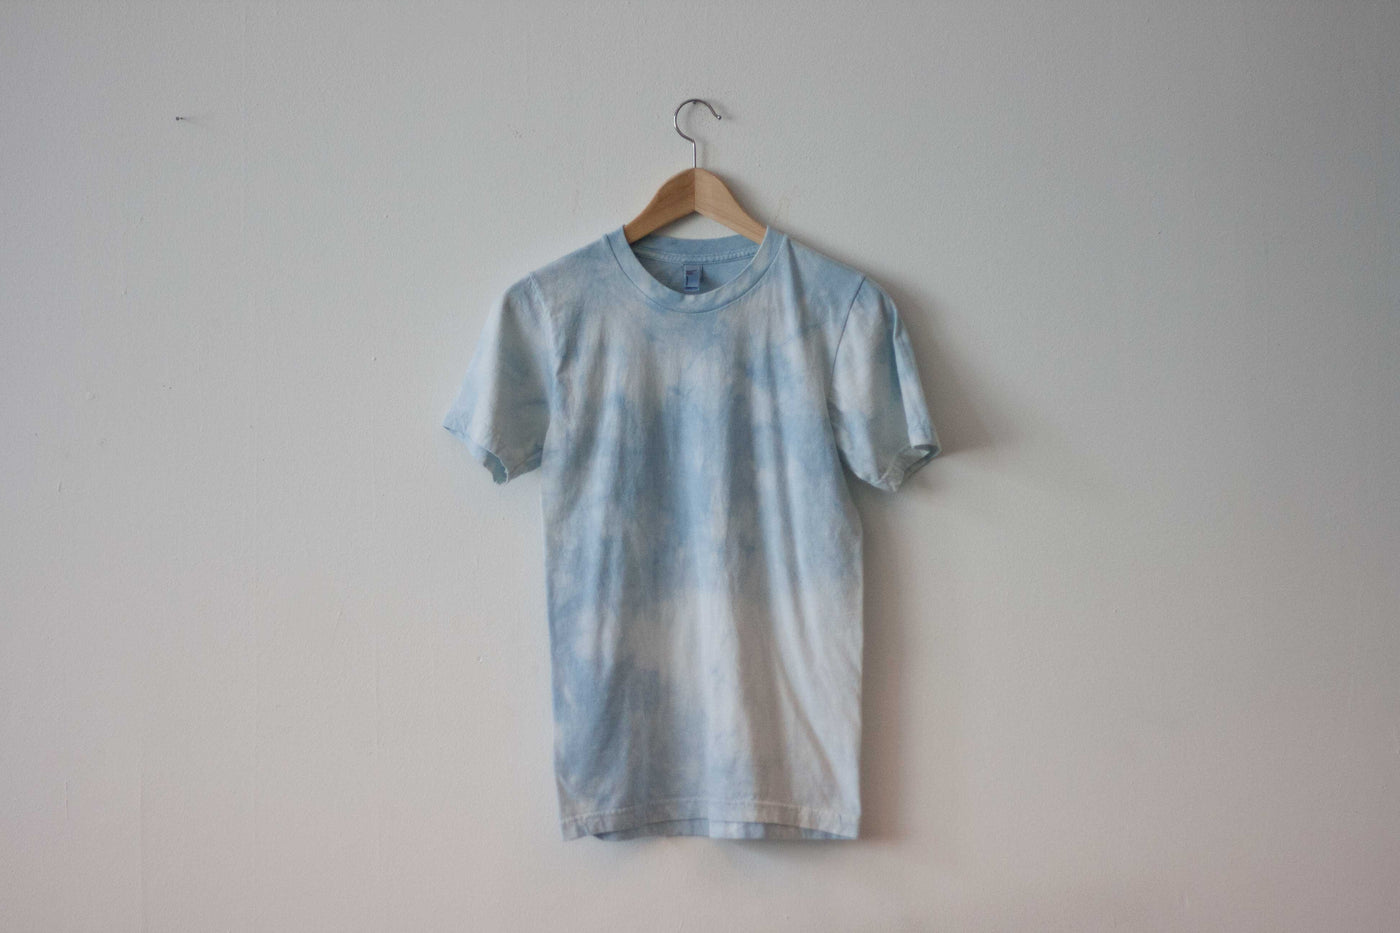 Indigo Cotton T-Shirt